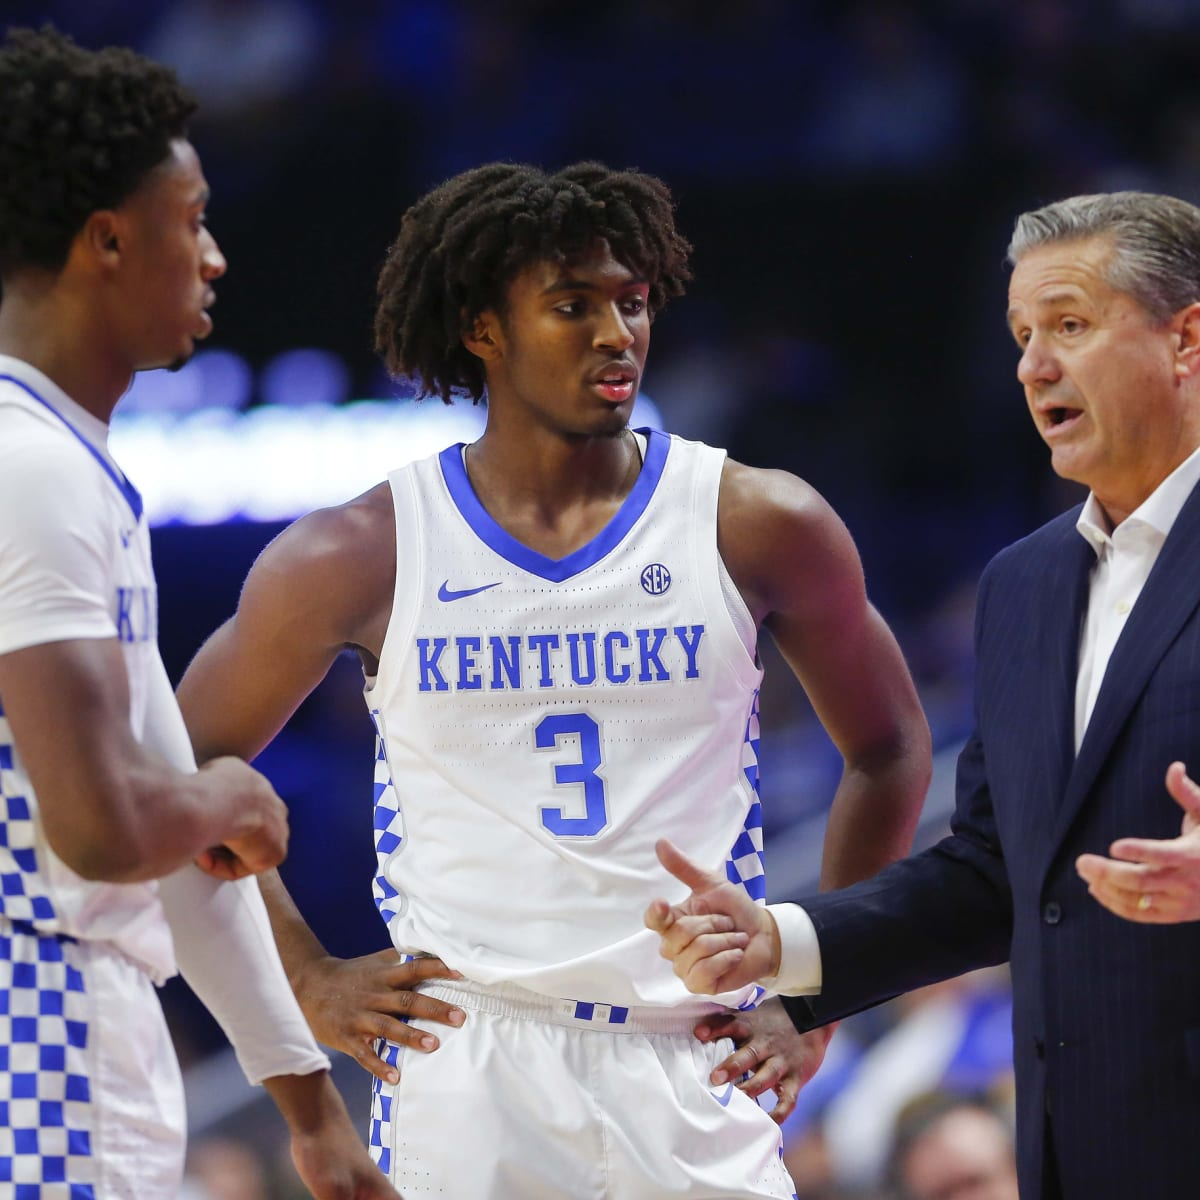 Kentucky S John Calipari Says Sixers Got A Steal With Tyrese Maxey Sports Illustrated Philadelphia 76ers News Analysis And More